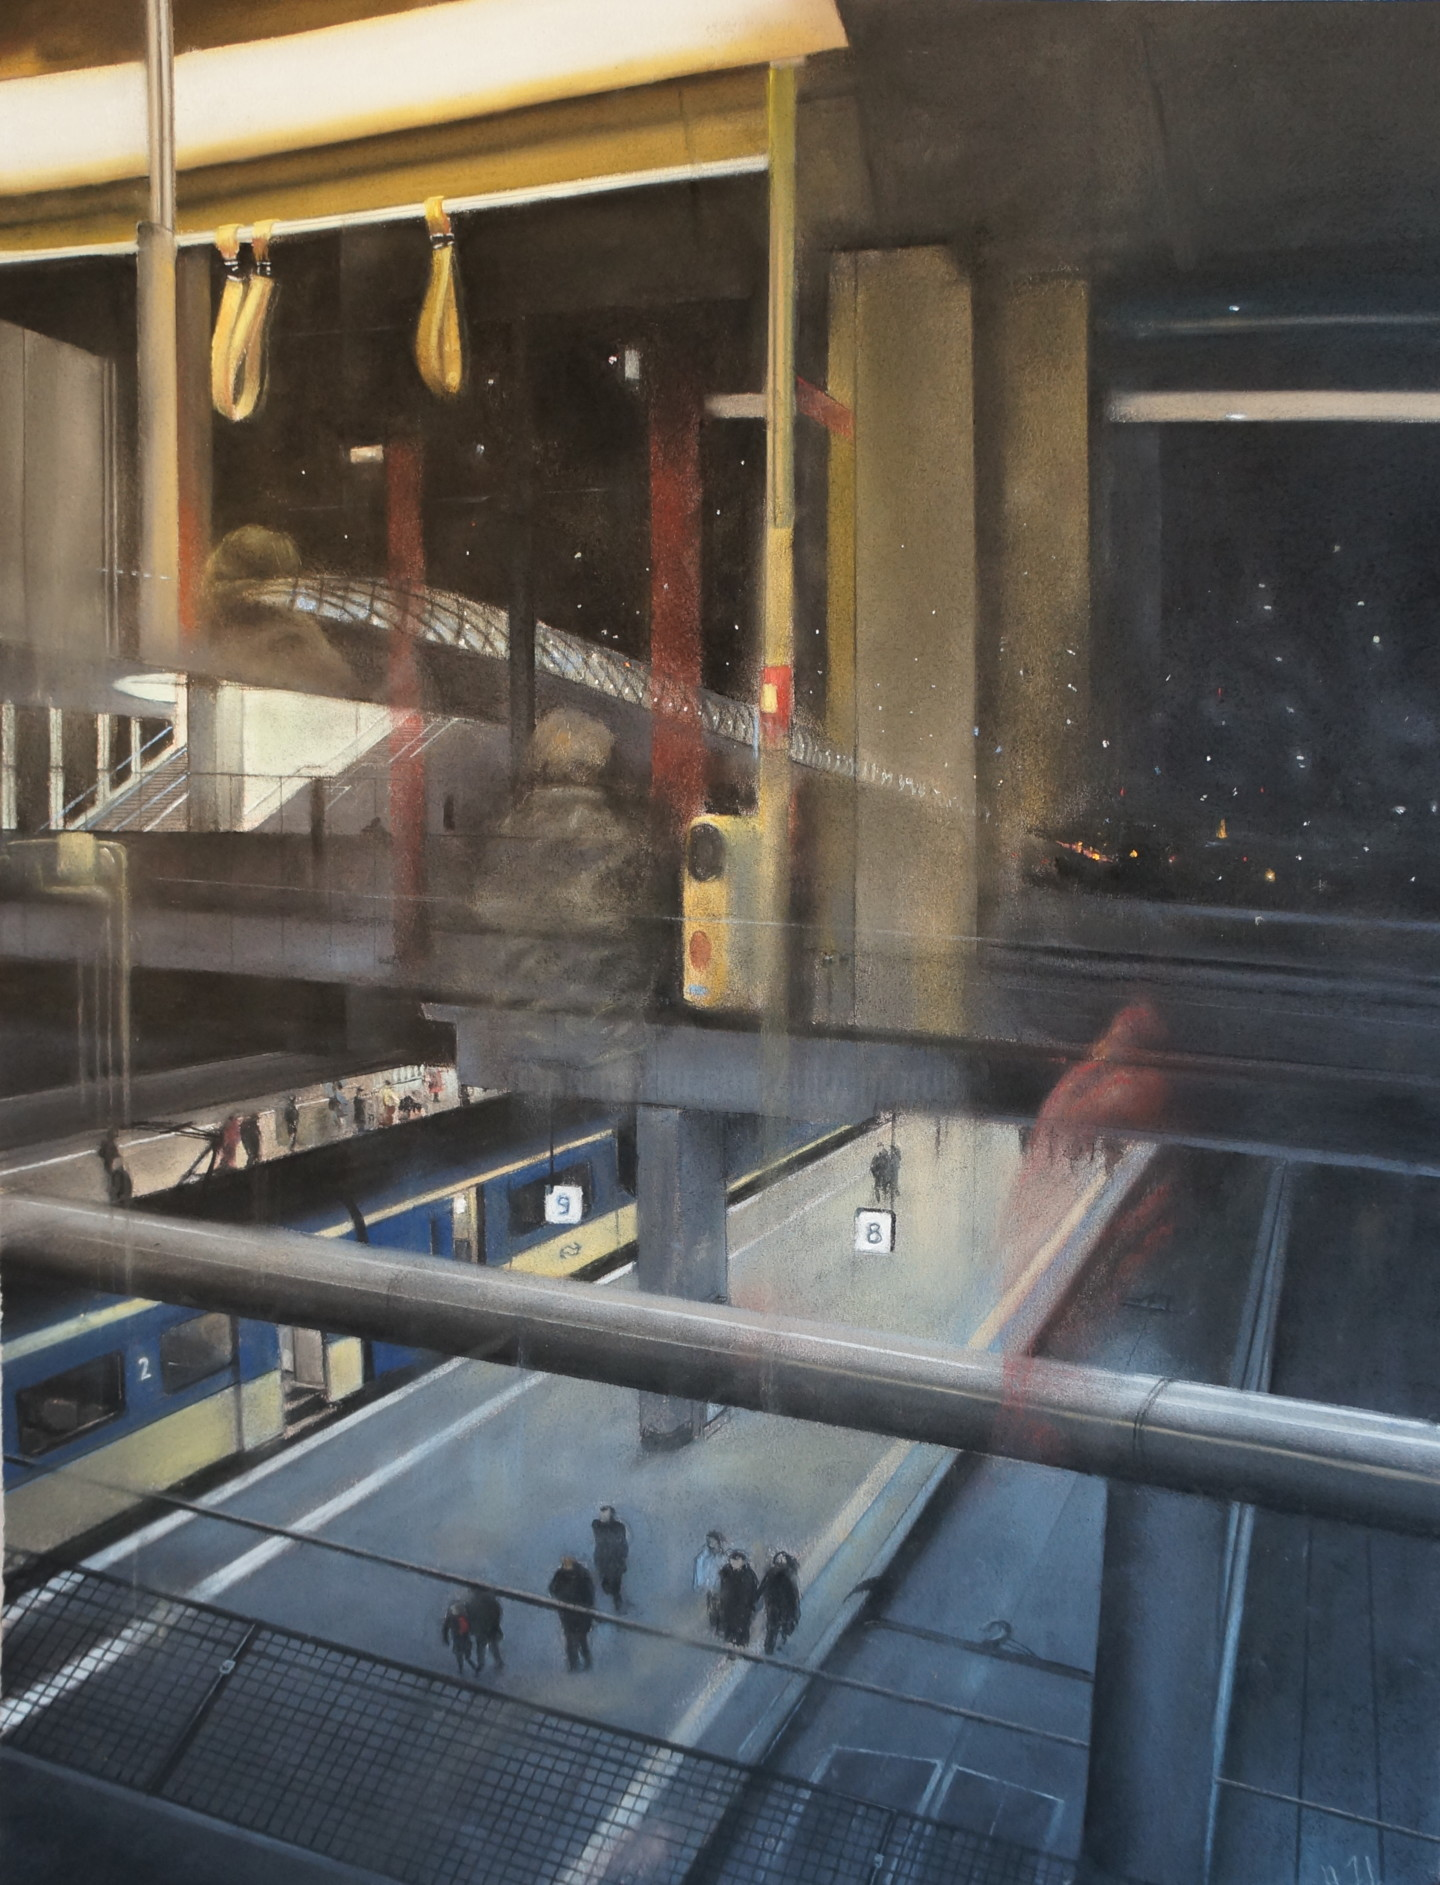 Alain Fortier - Centraal station